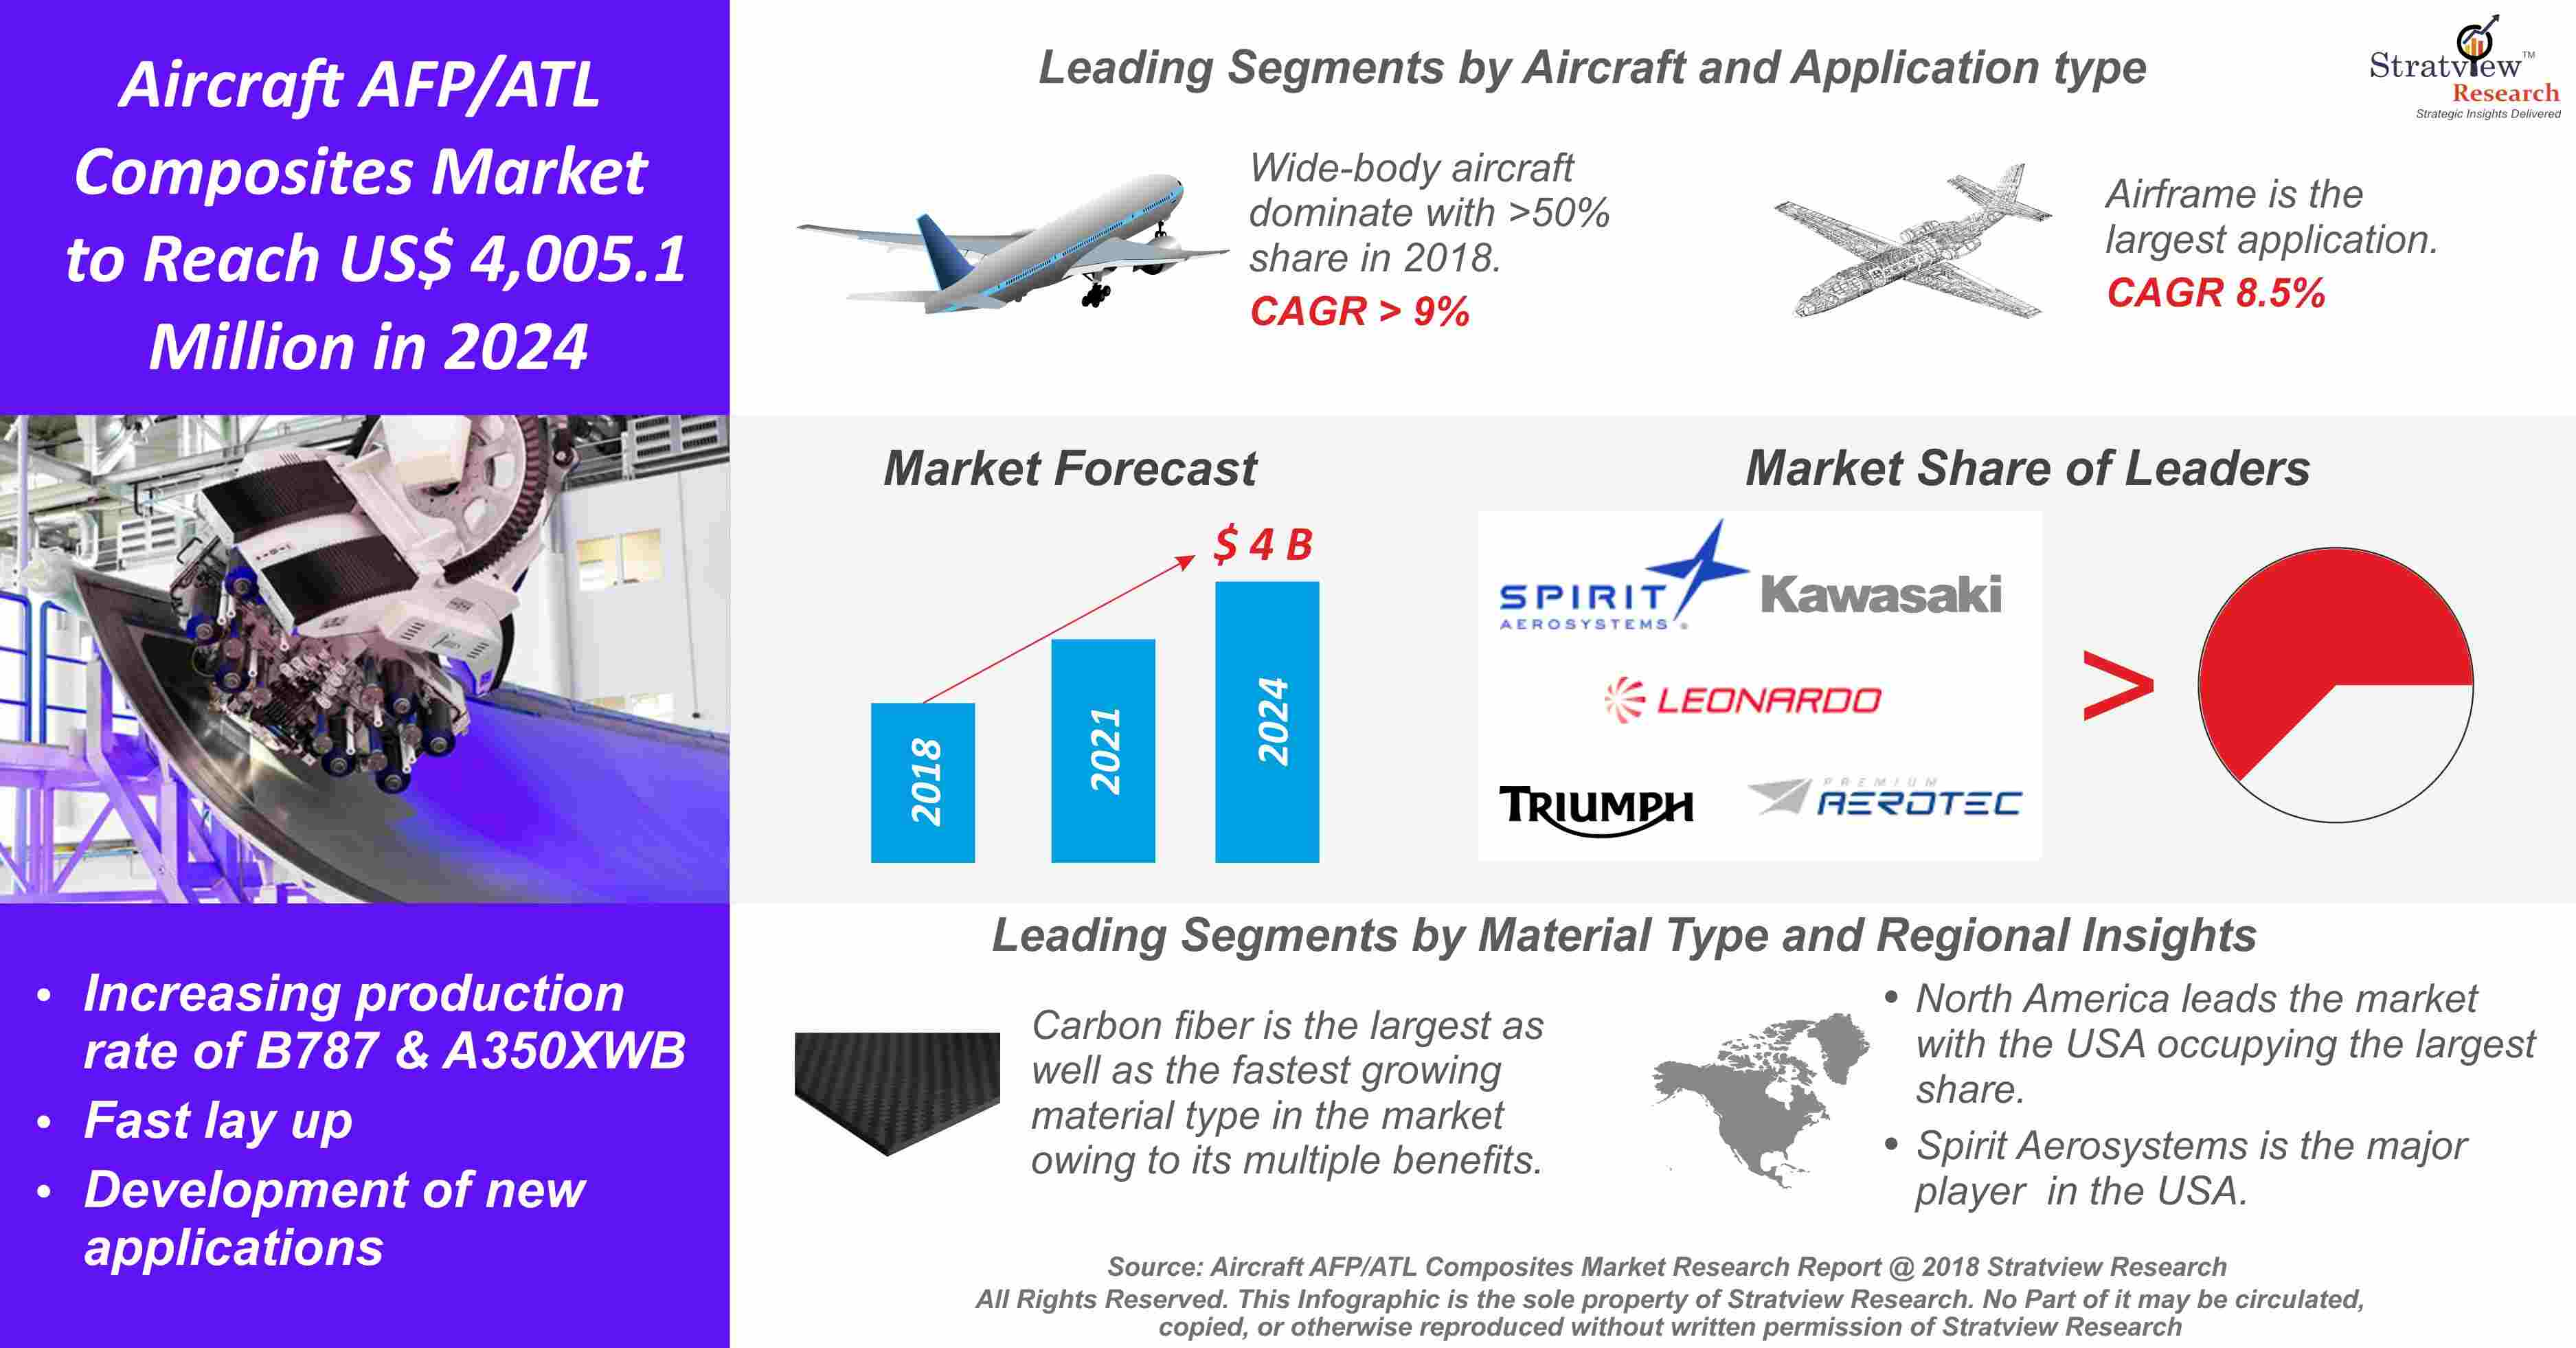 Aircraft AFP/ATL Composites Market Analysis